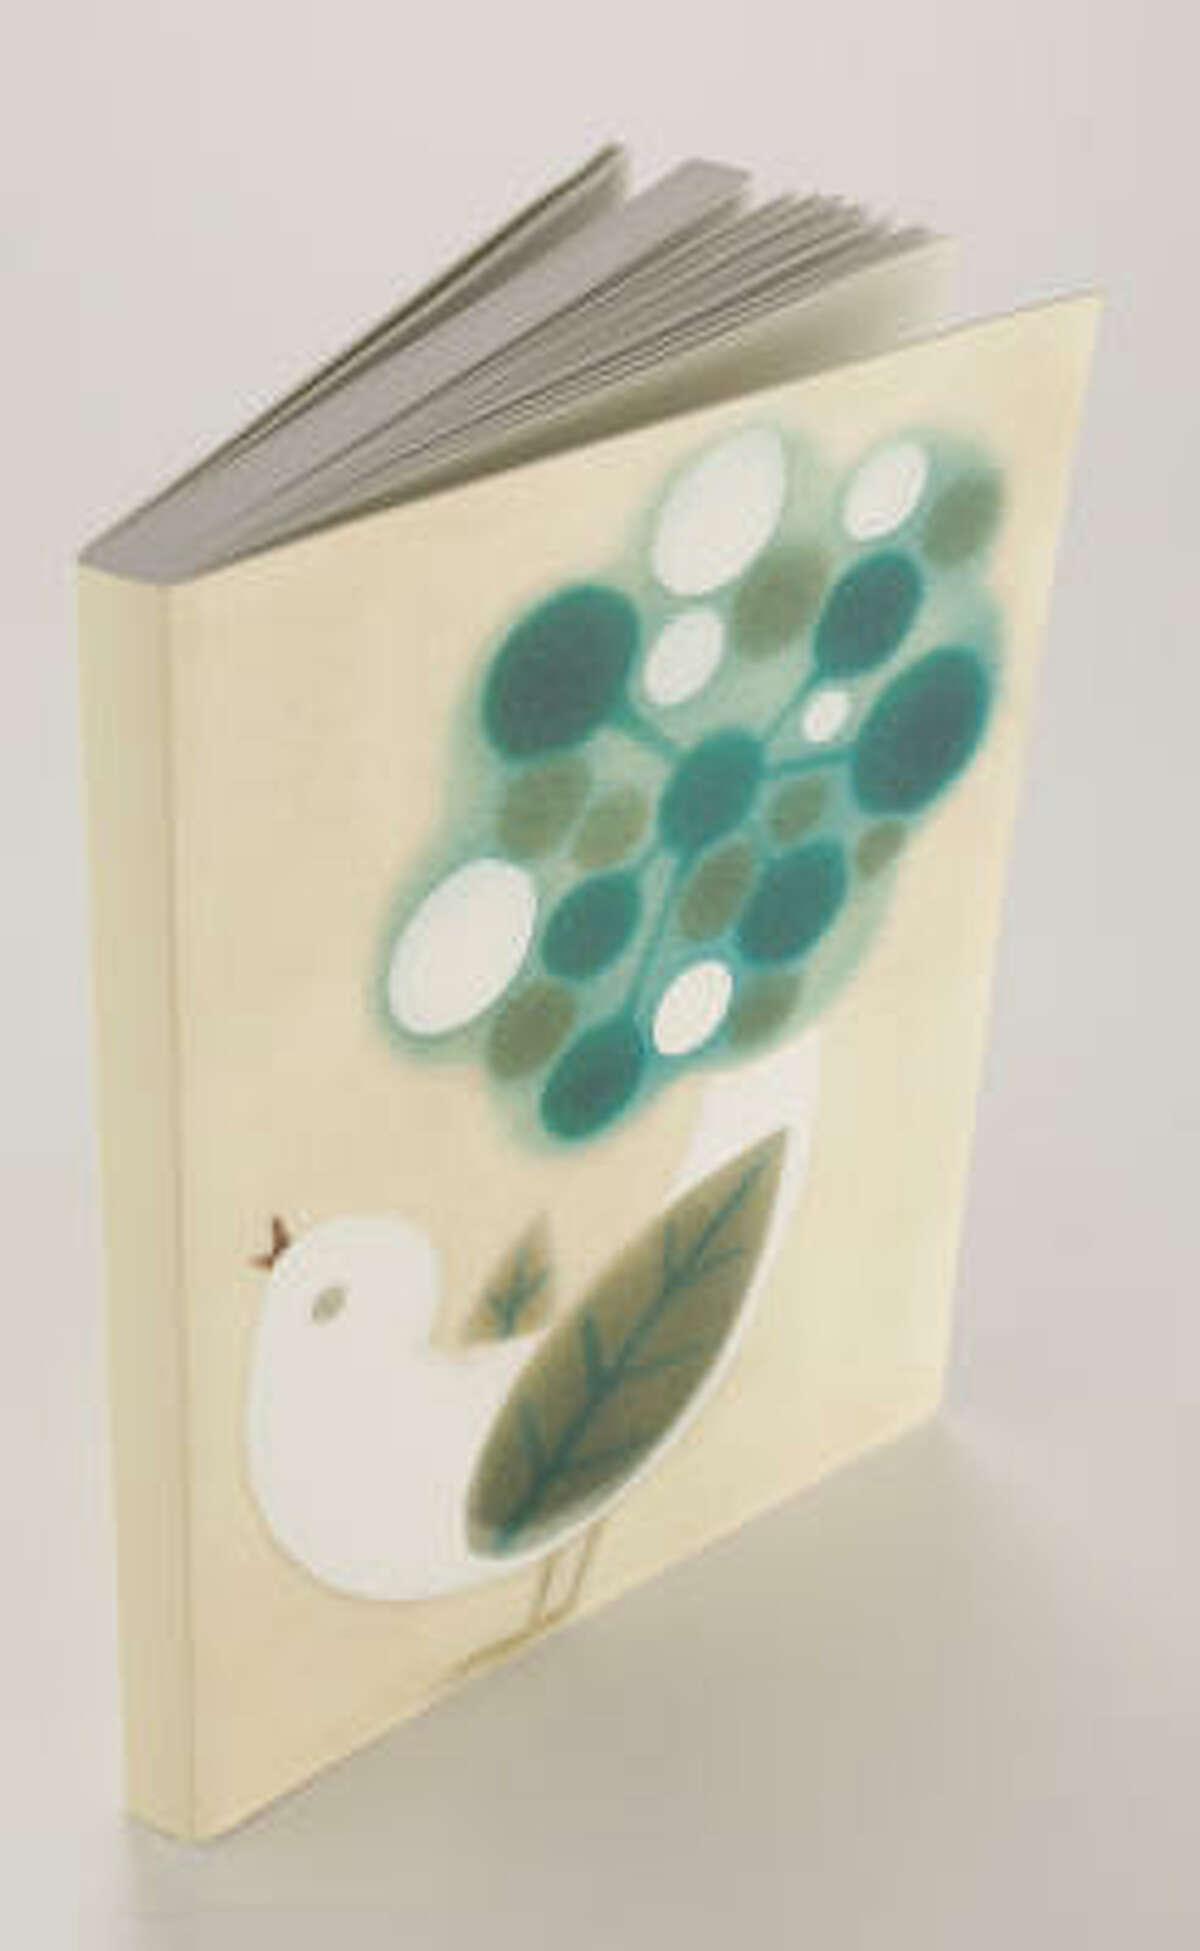 Barnes & Noble carries card sets and journals, $9.95-$14.95, that feature her work.